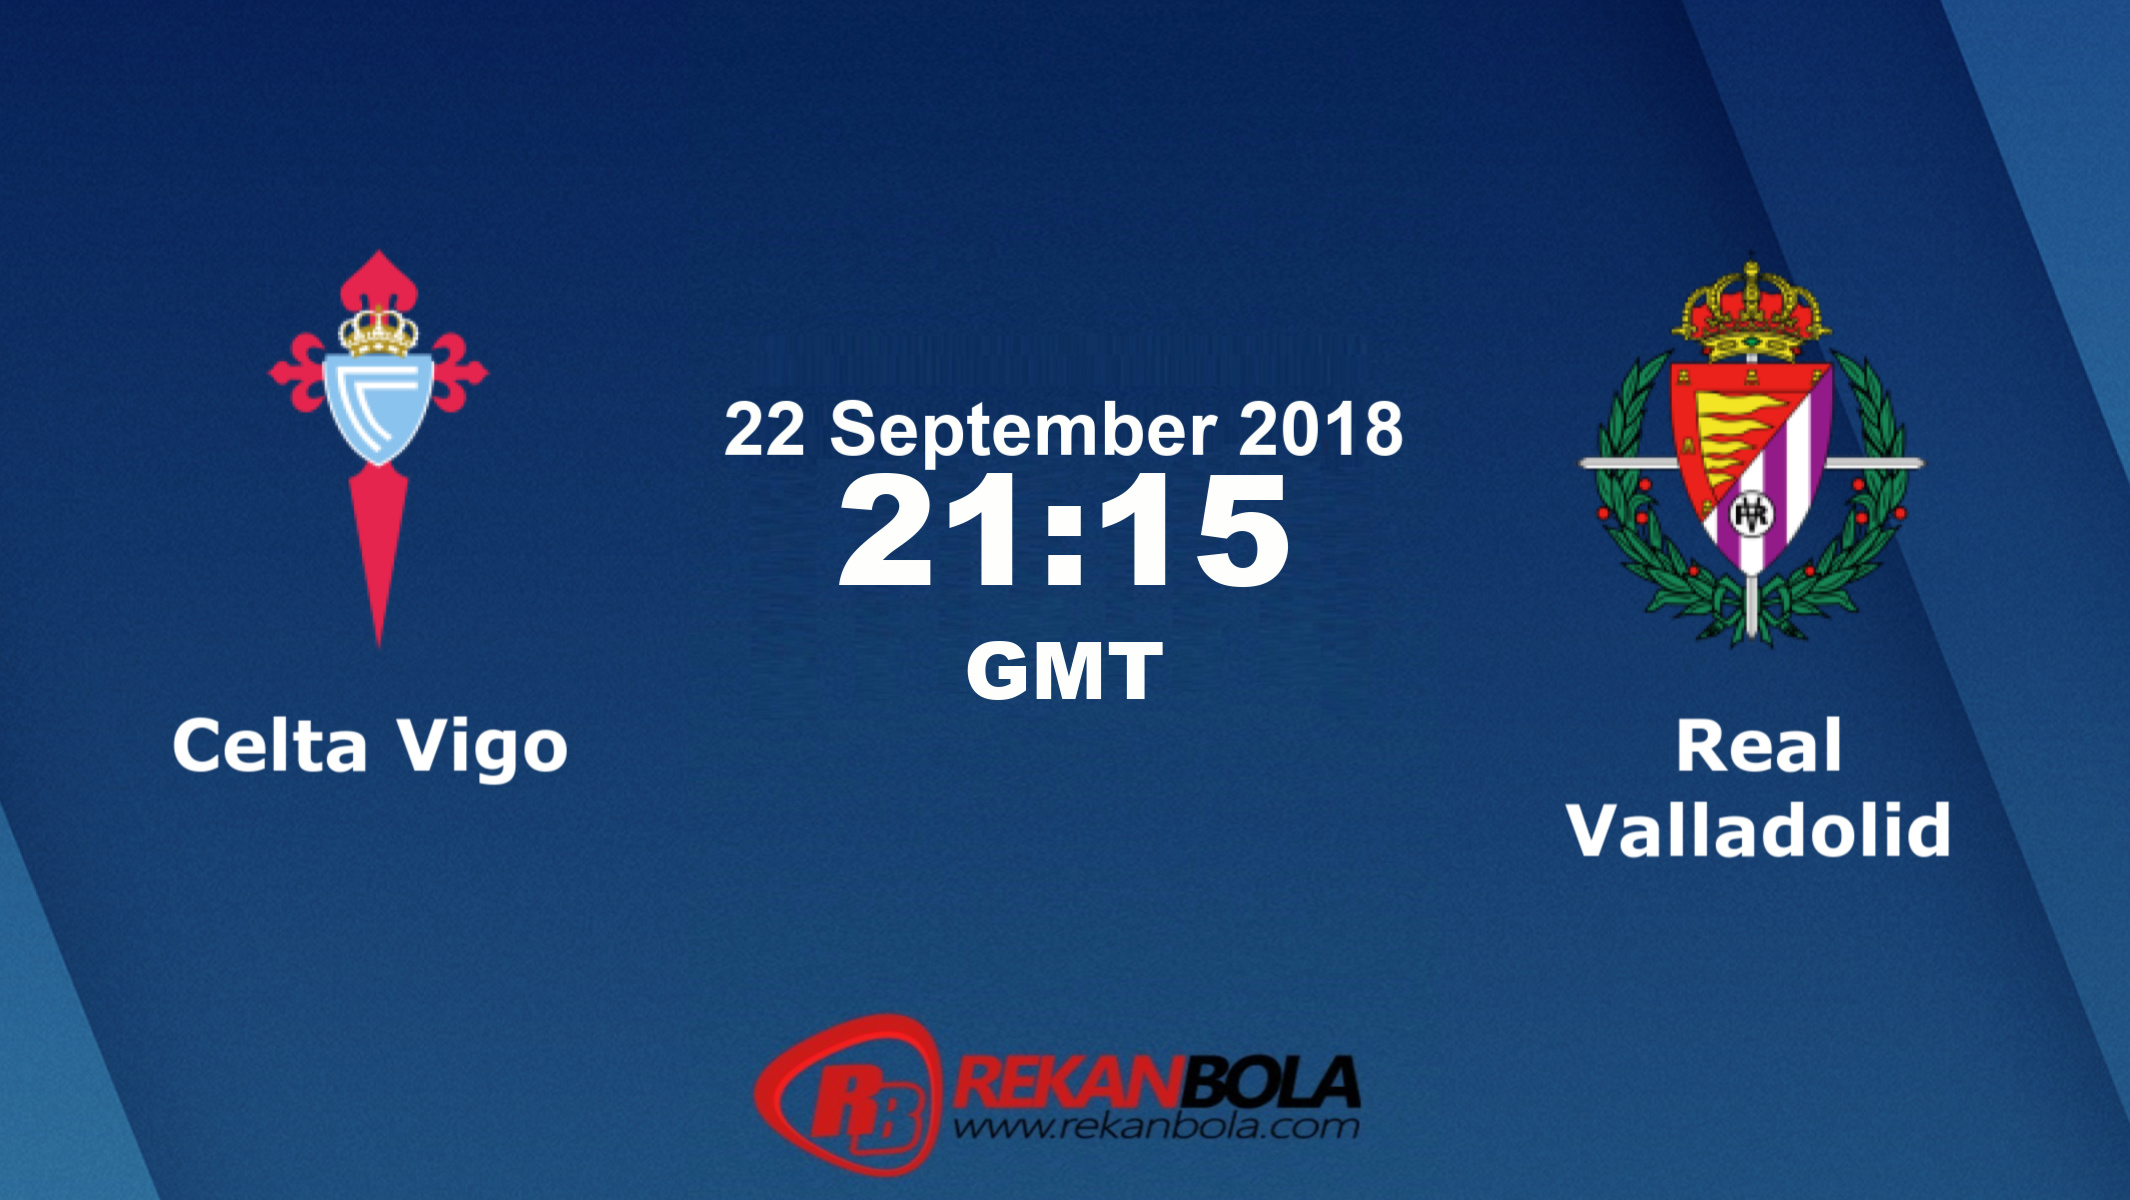 Nonton Siaran Live Streaming Celta Vs Valladolid 22 September 2018